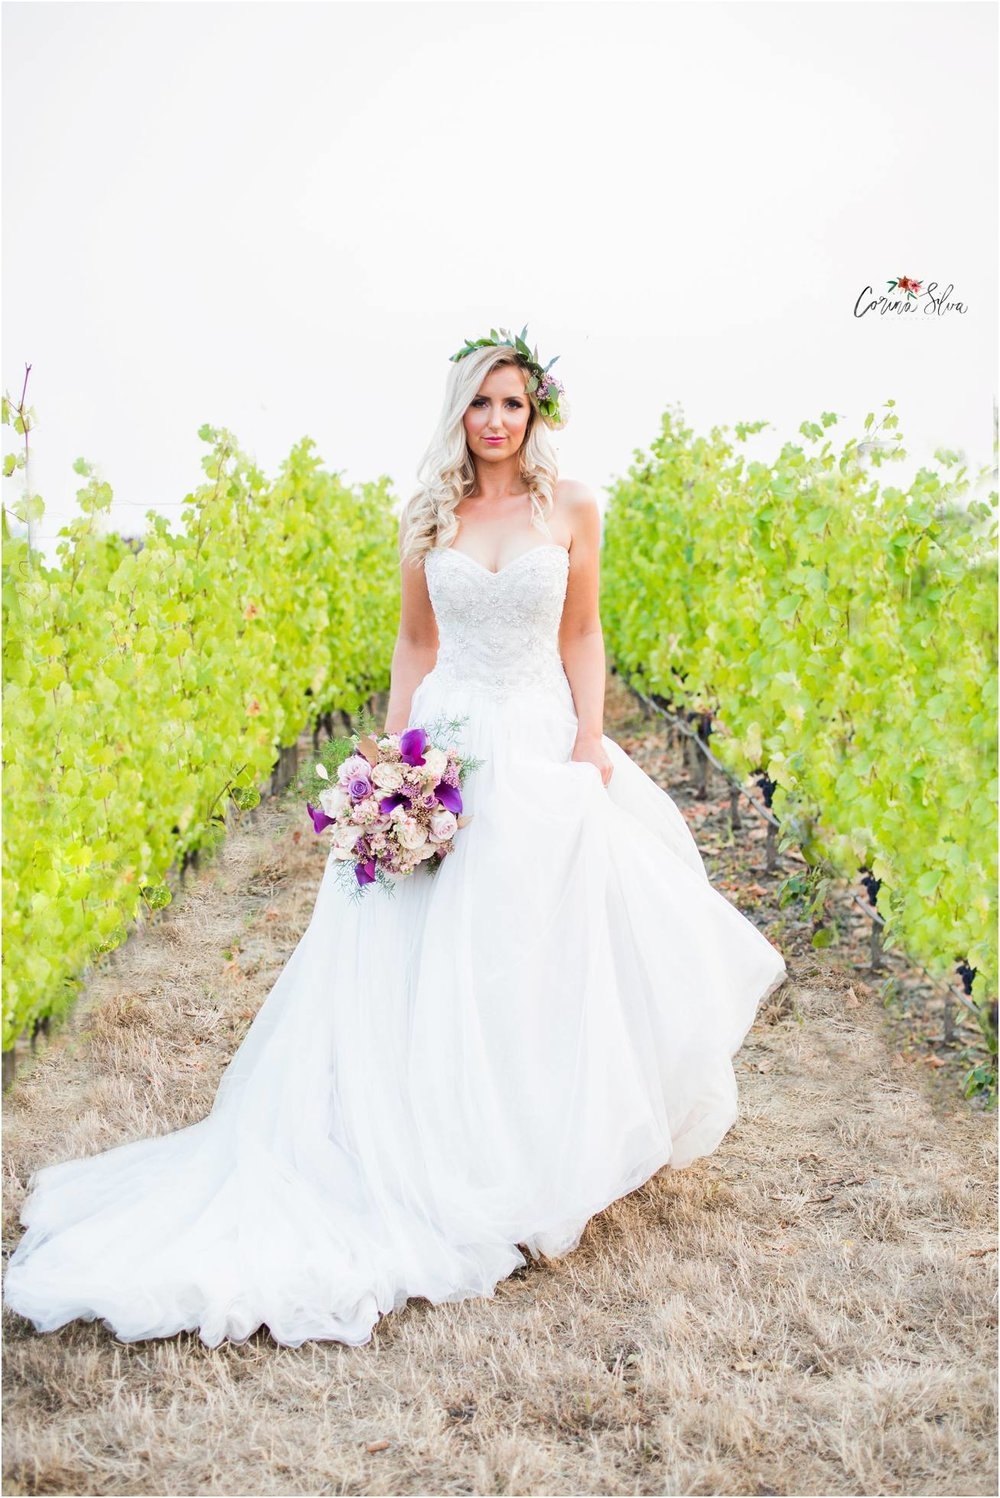 Zenith-Wineyard-Wedding-Styled-Photo-Corina-Silva-Studios_0053.jpg